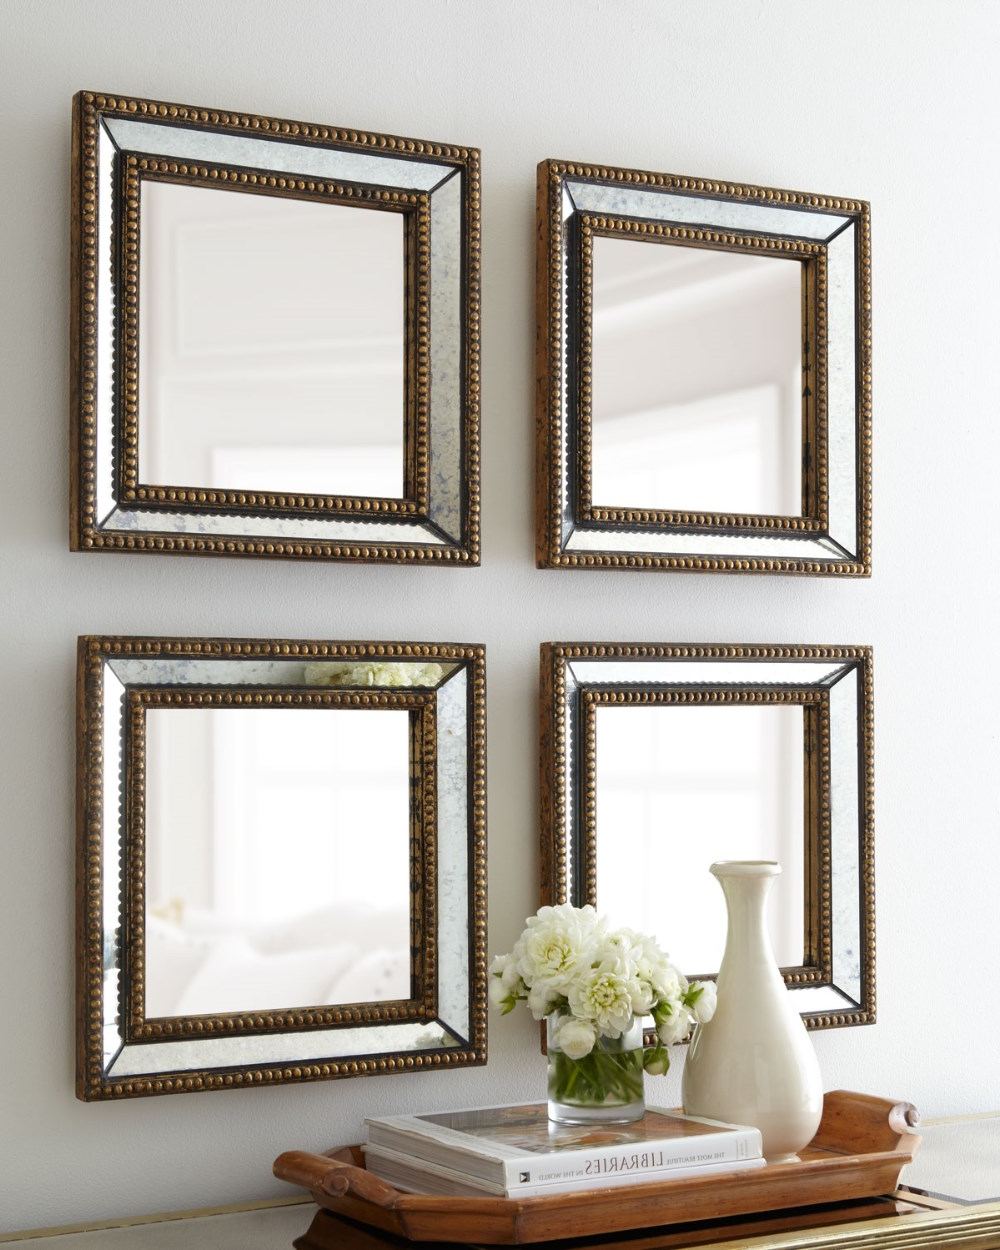 Mirror: Charming Wall Mirrorhobby Lobby Mirrors — Anarmammadov With Regard To Latest Hobby Lobby Wall Mirrors (View 13 of 20)